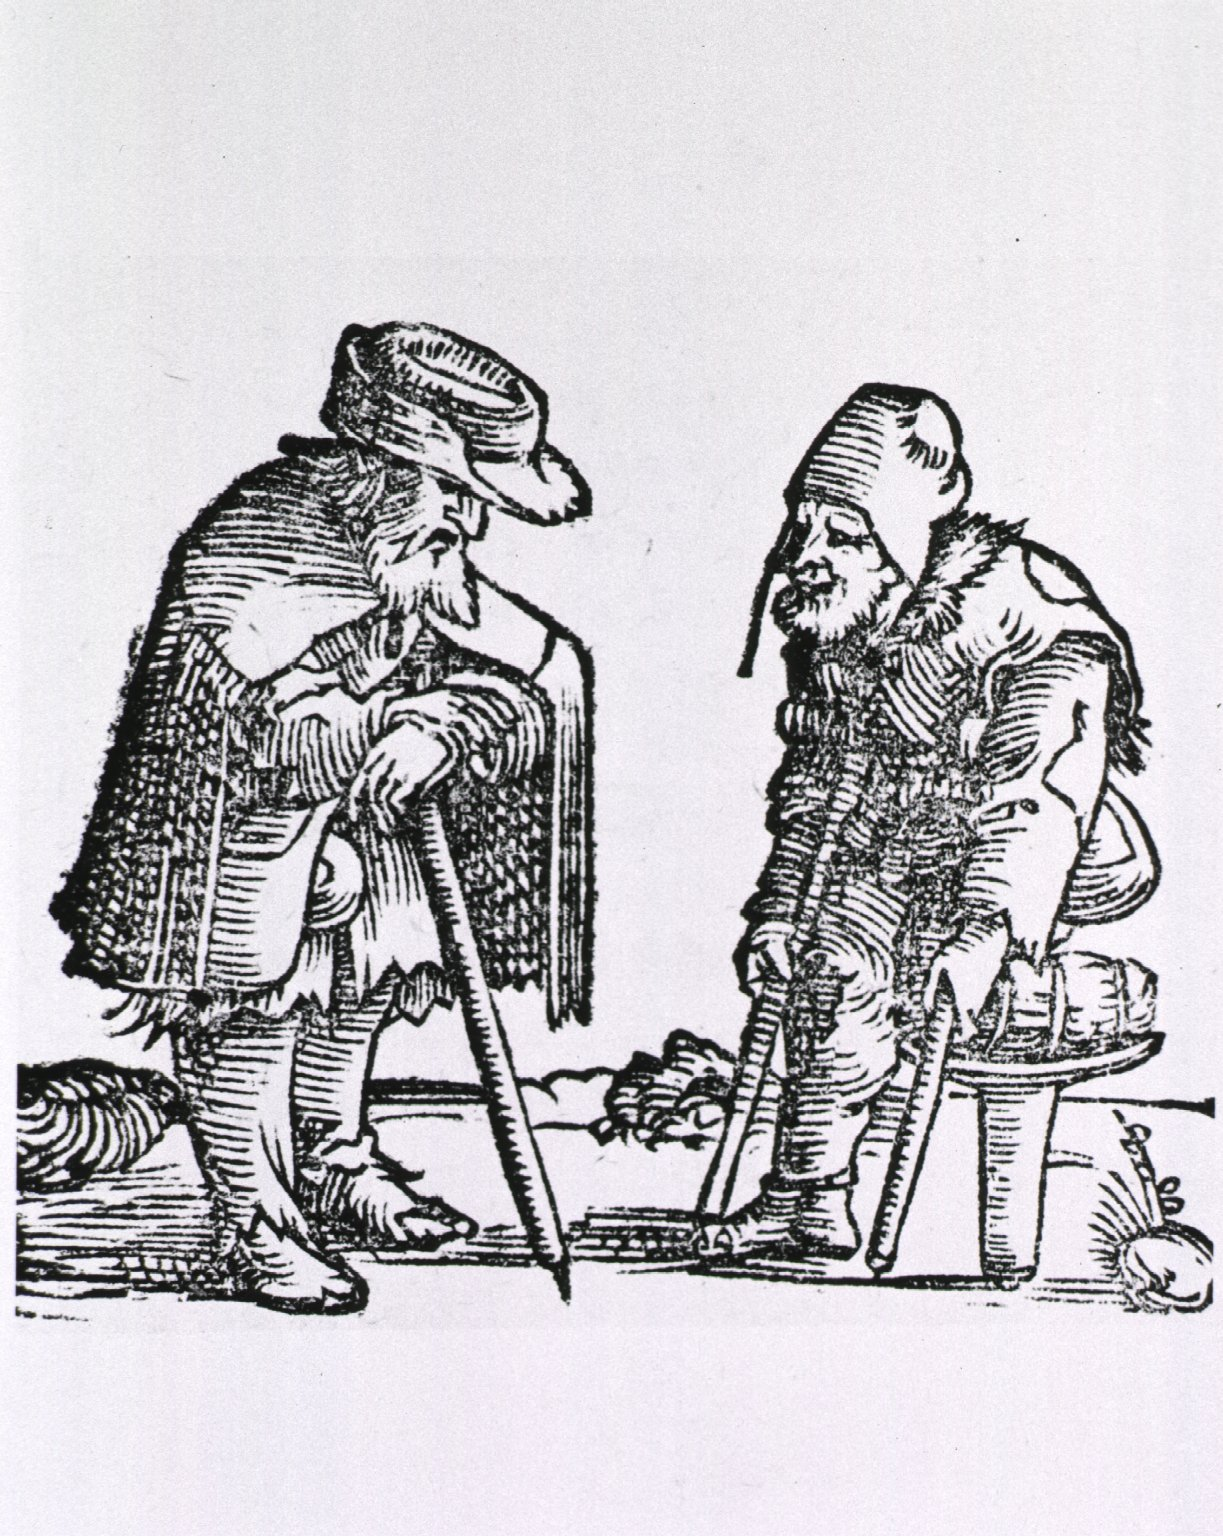 Old man with cane meets old man with one leg